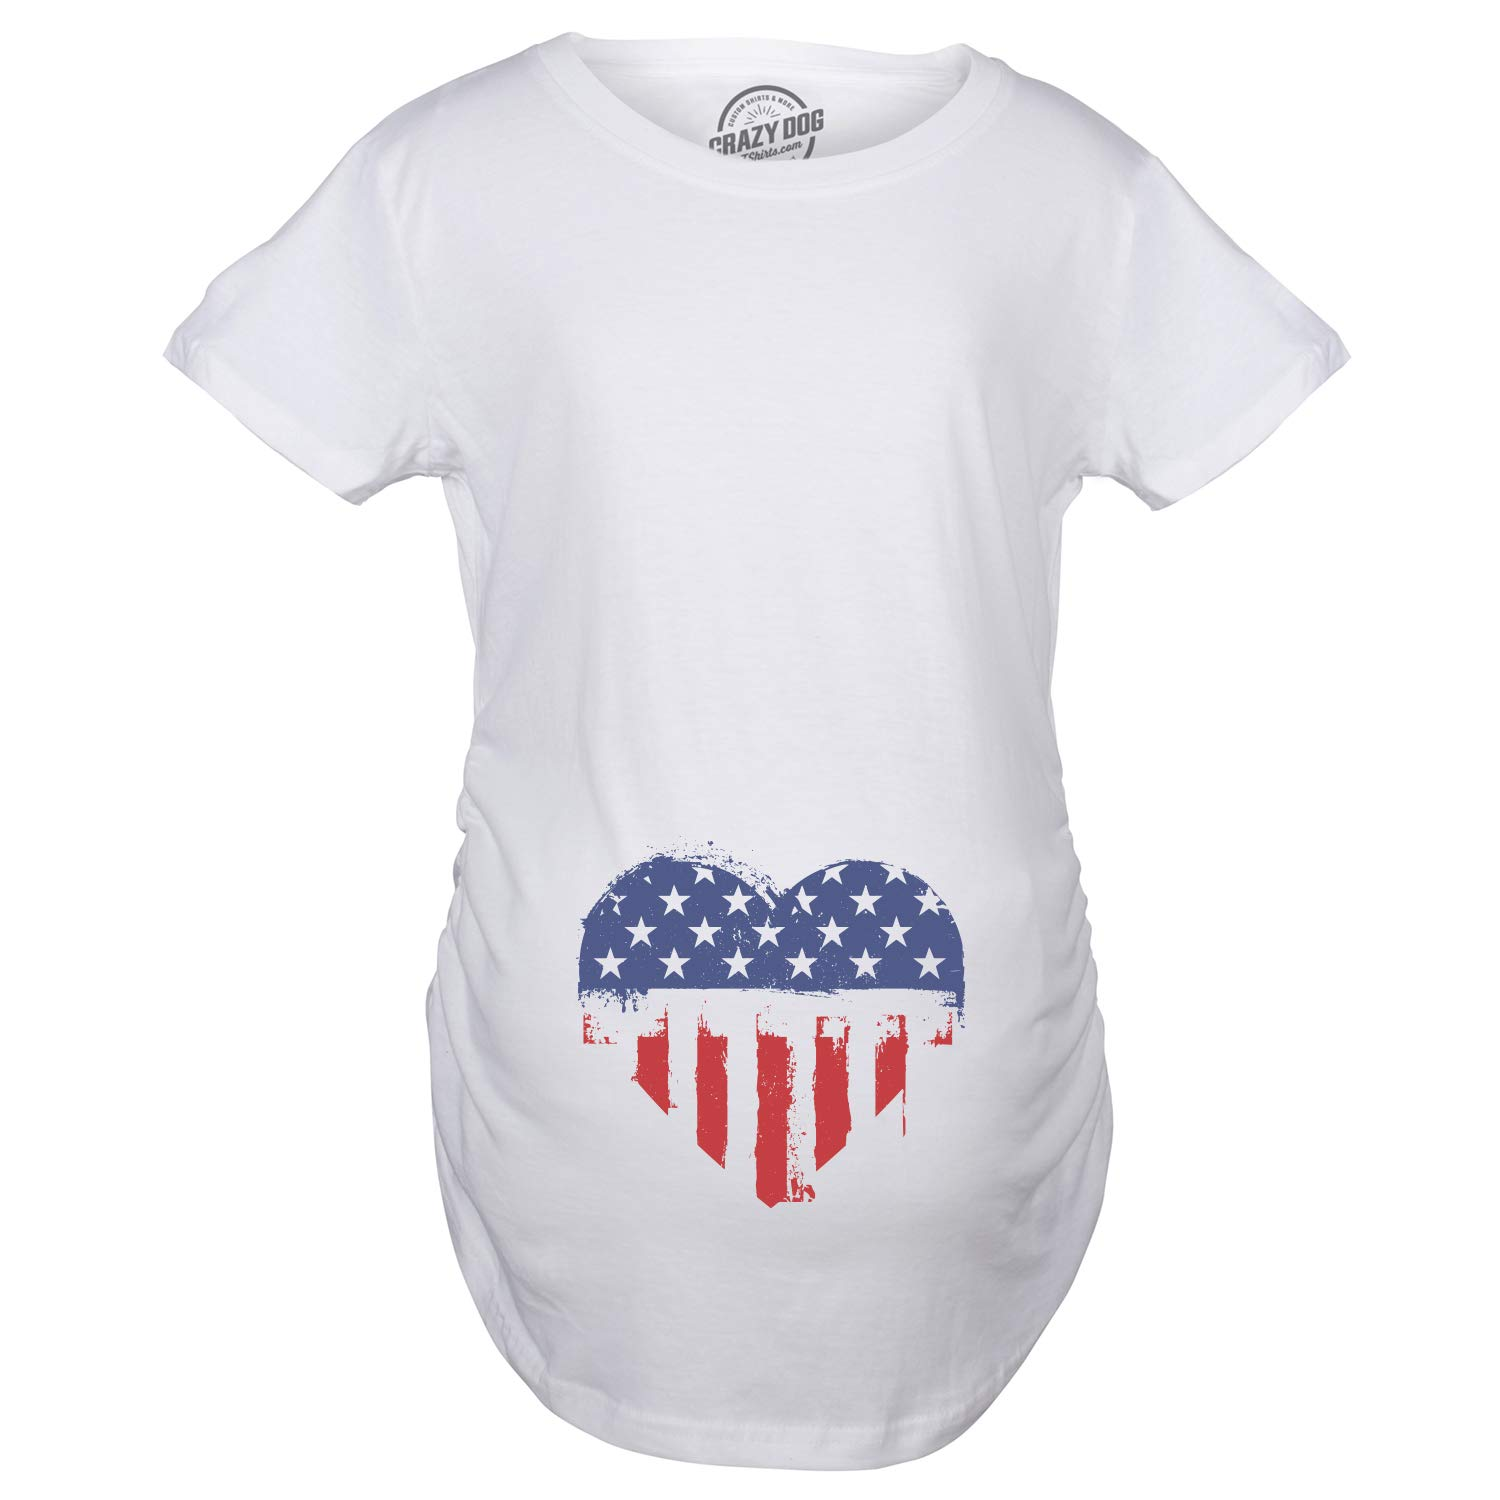 a3bb361bfe4ab Crazy Dog T-Shirts Maternity USA Heart American Flag Announcement Funny  Pregnancy T Shirt at Amazon Women's Clothing store: